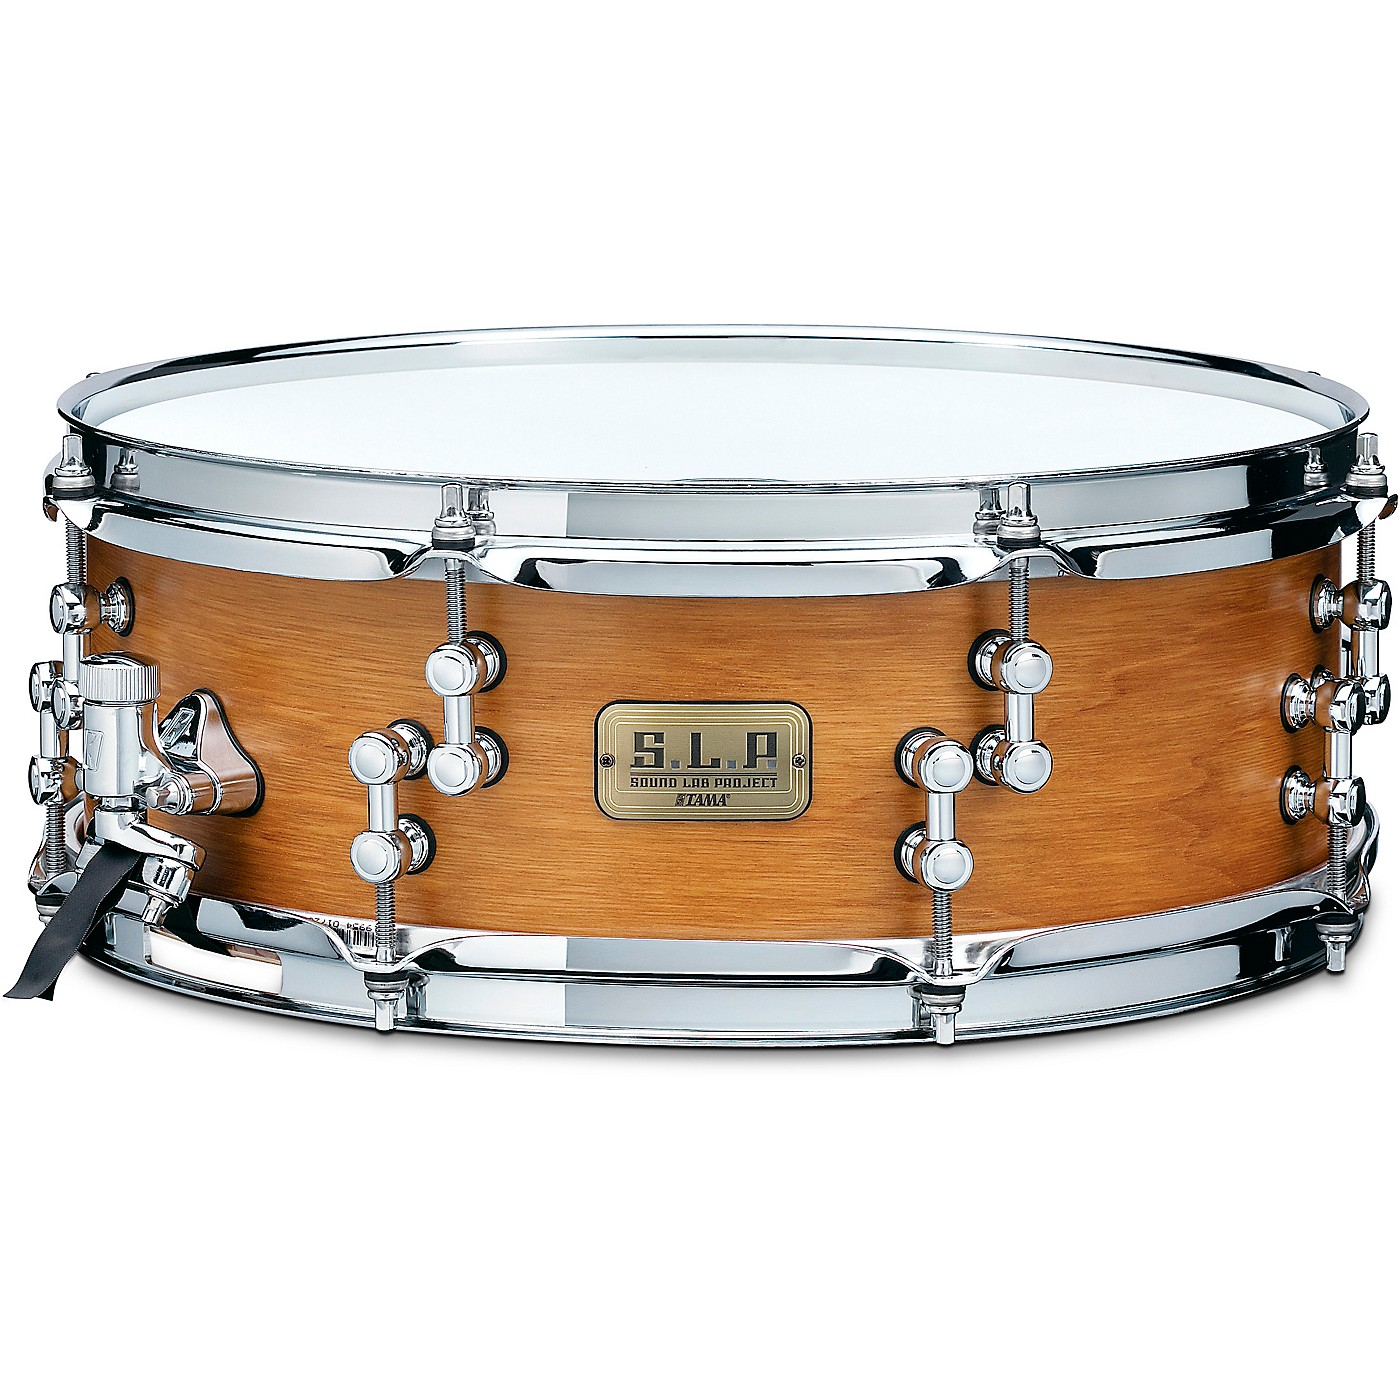 TAMA S.L.P. New-Vintage Hickory Snare Drum thumbnail